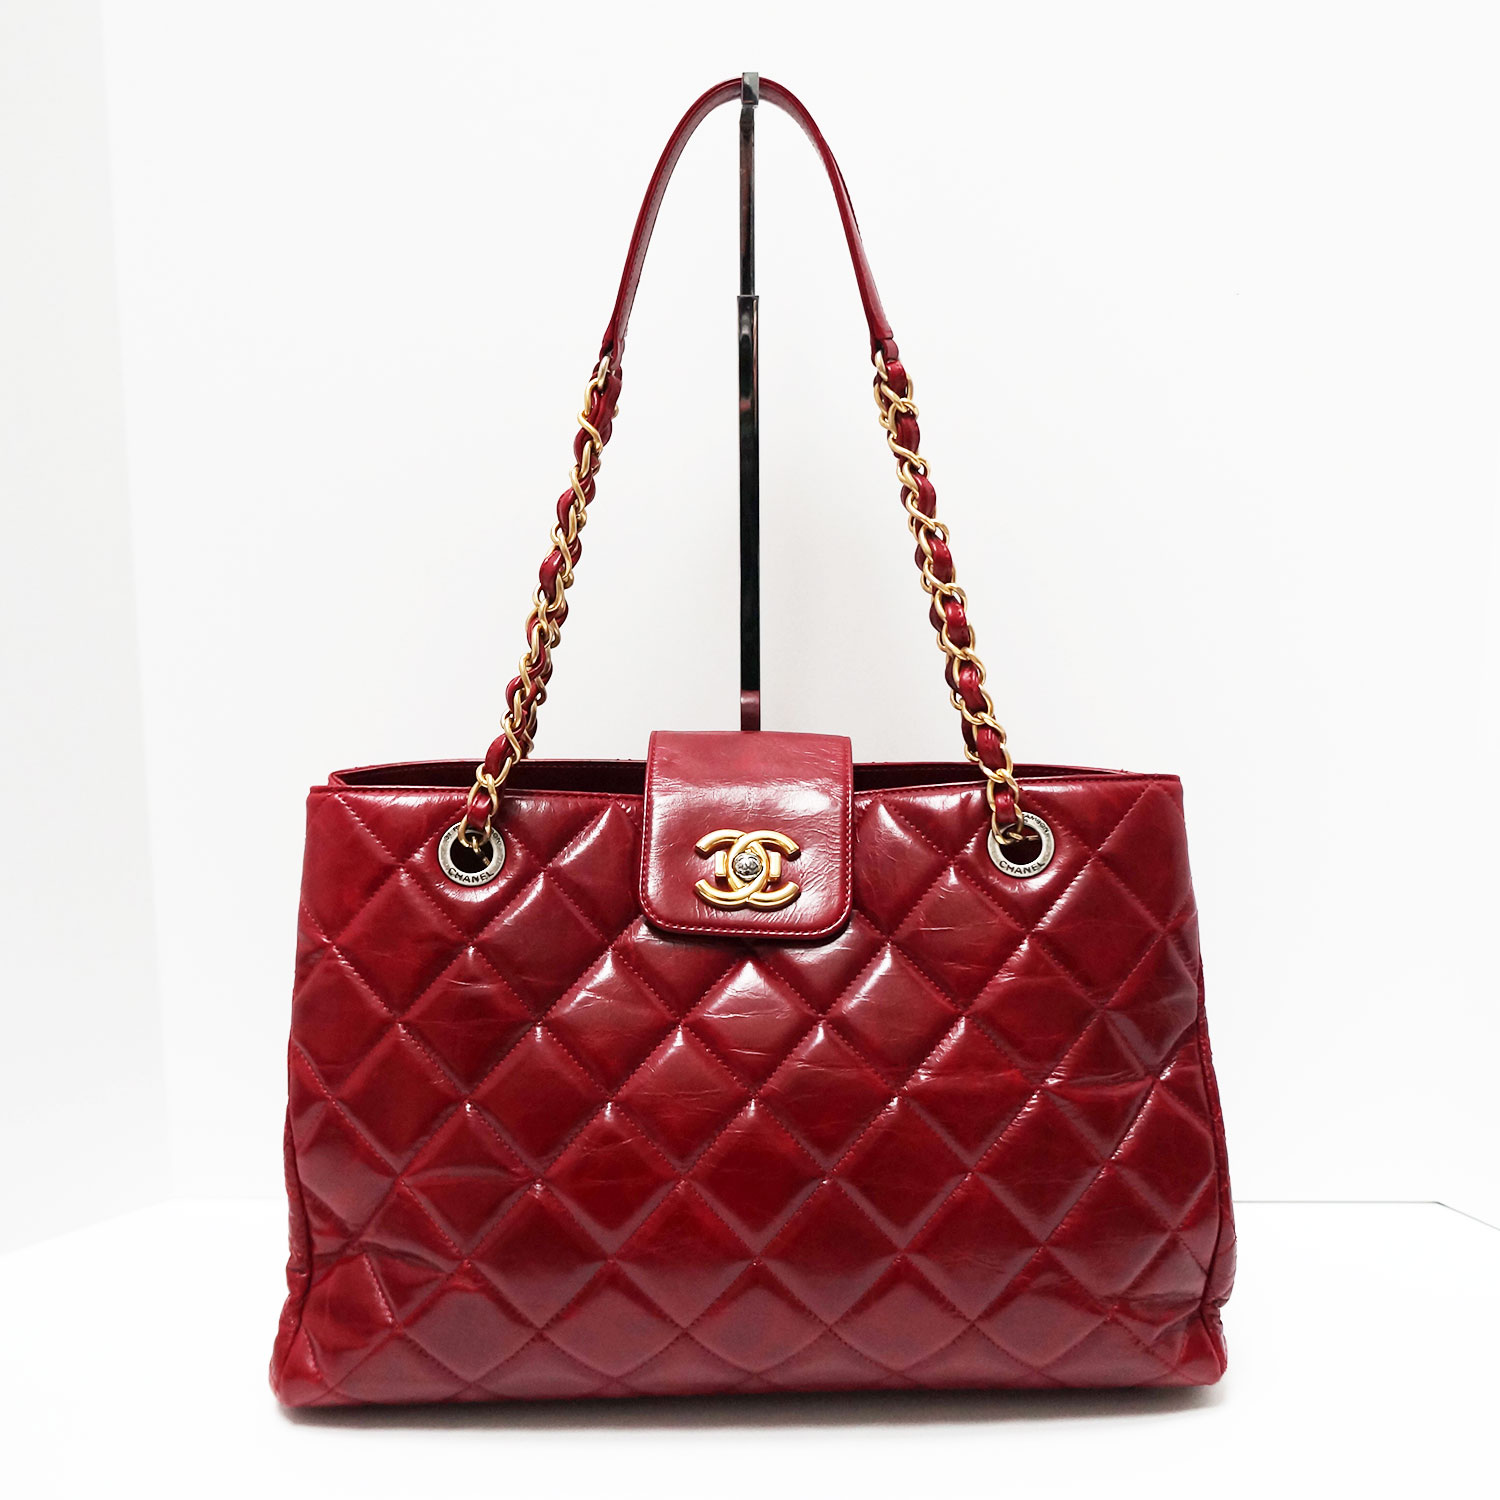 Chanel Burgundy Glazed Leather Gold Hardware CC Lock Tote Bag